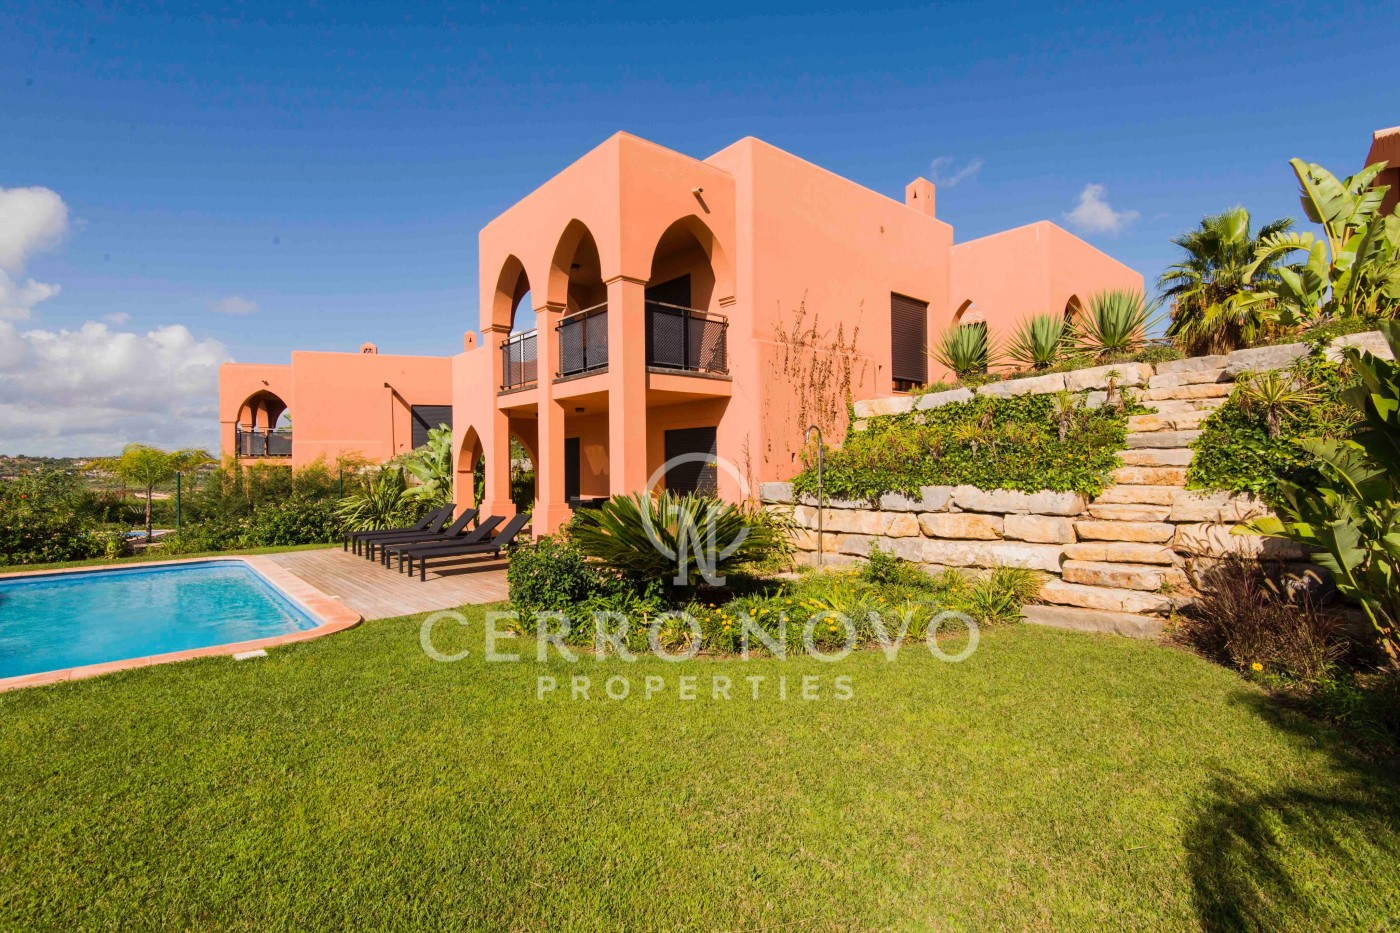 Three bedroom villas overlooking  golf course in the Algarve